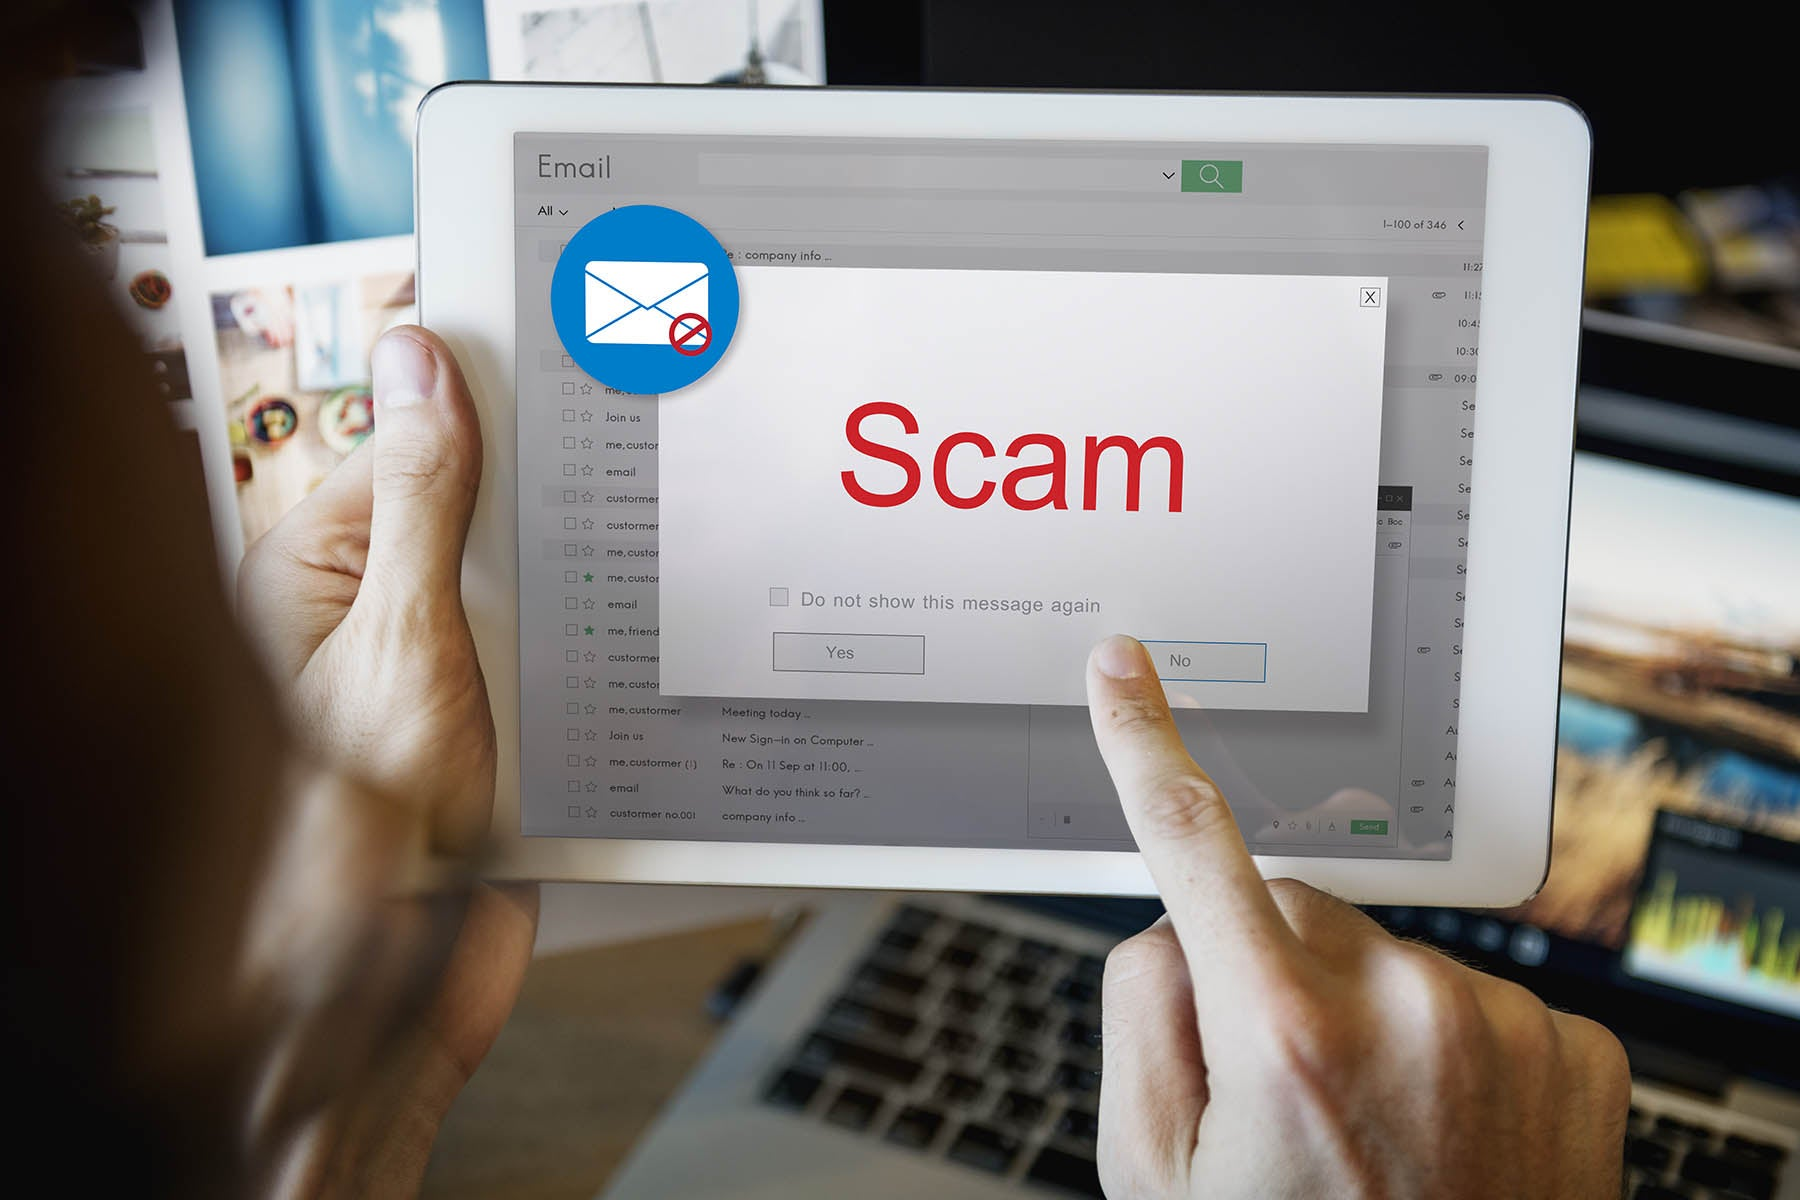 Email scam warning image